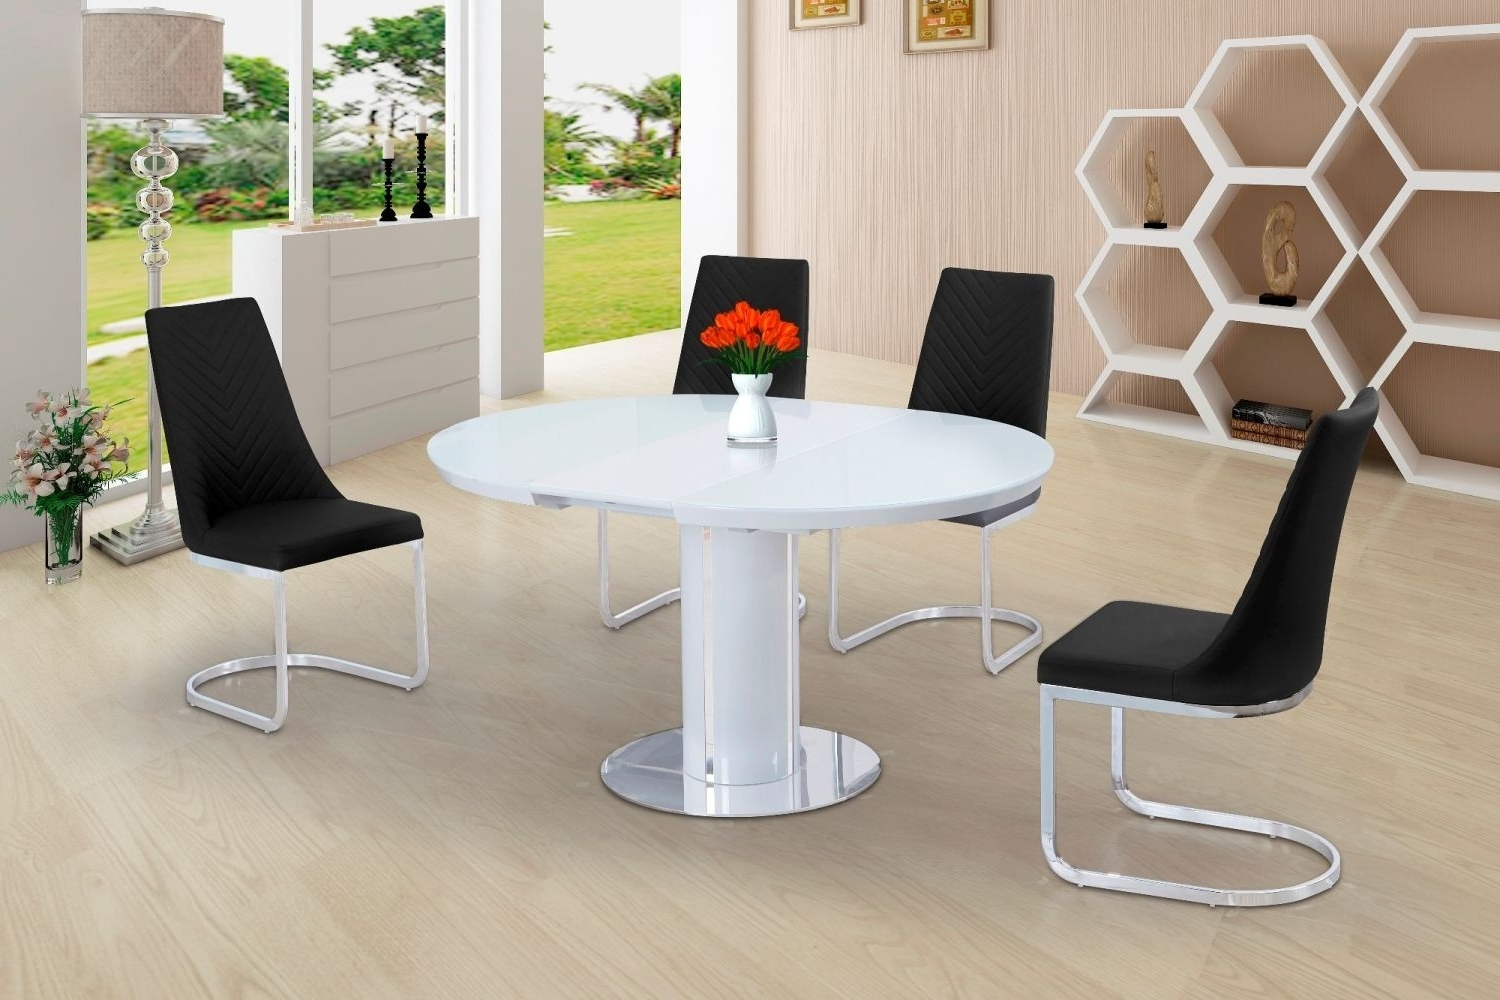 Famous Extending Round Dining Tables Inside Buy Space Saving White Gloss Extending Round Dining Table (View 11 of 25)